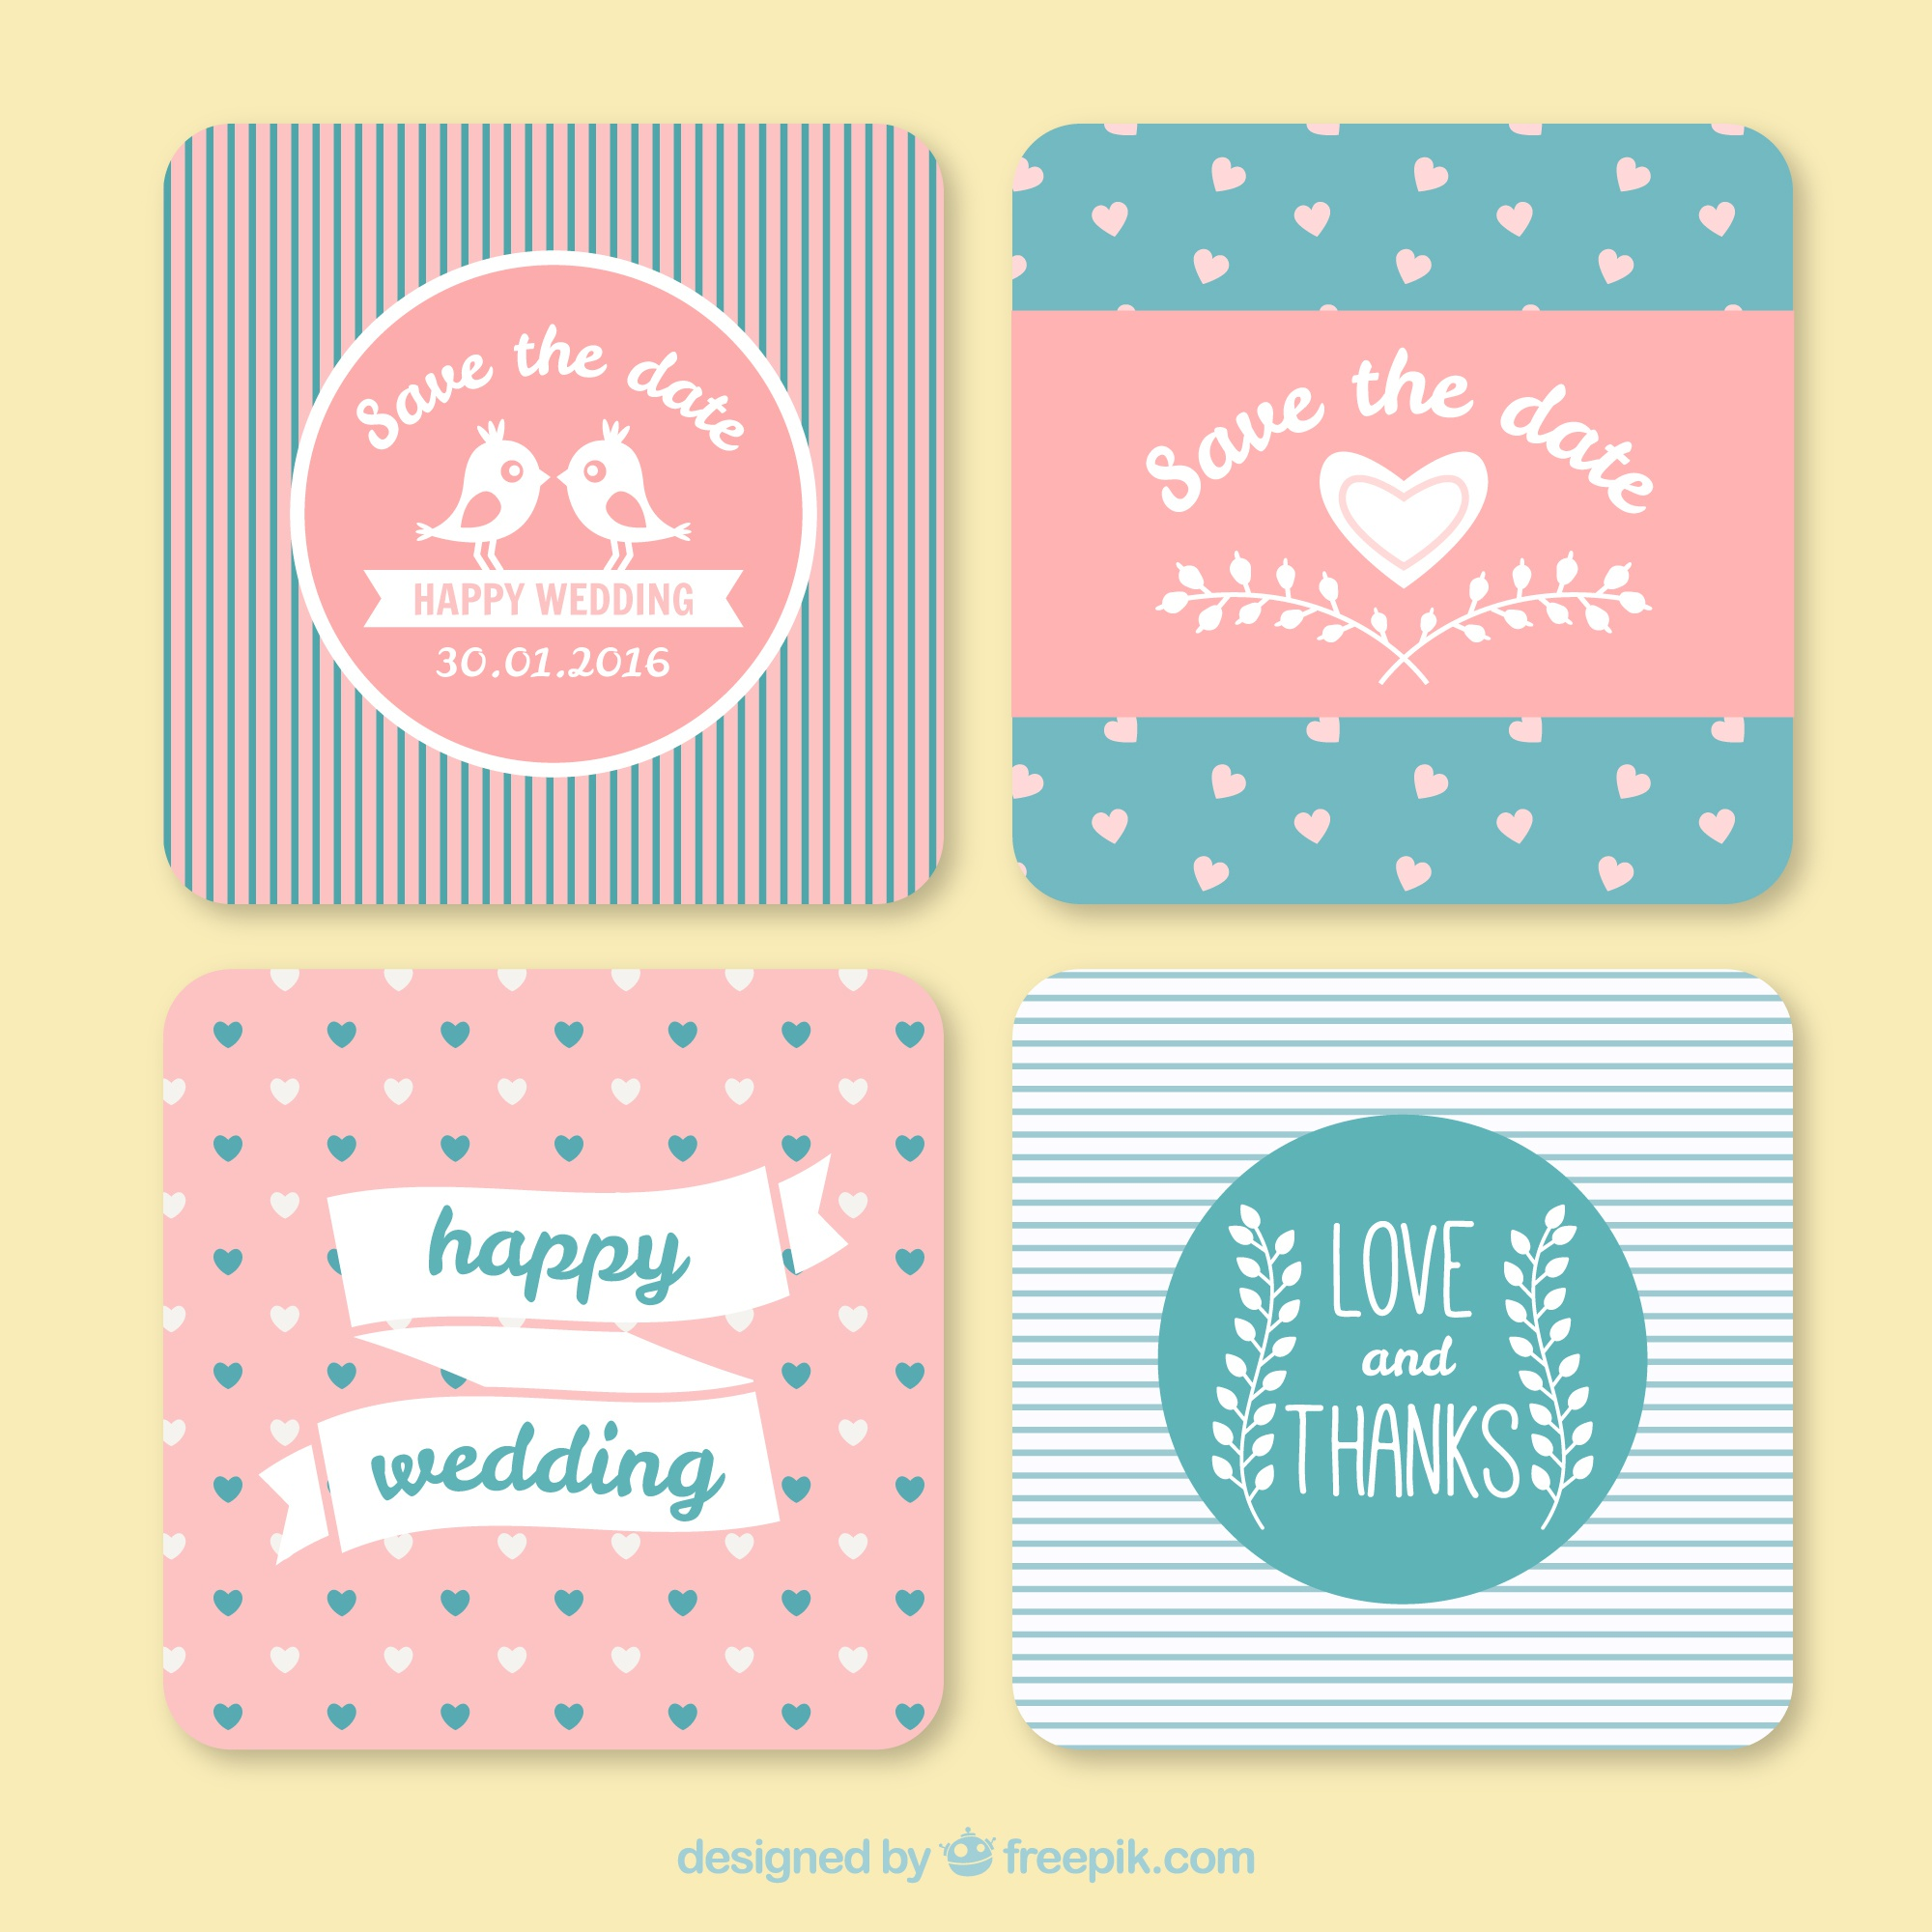 Lovely vintage wedding invitations with lines and hearts